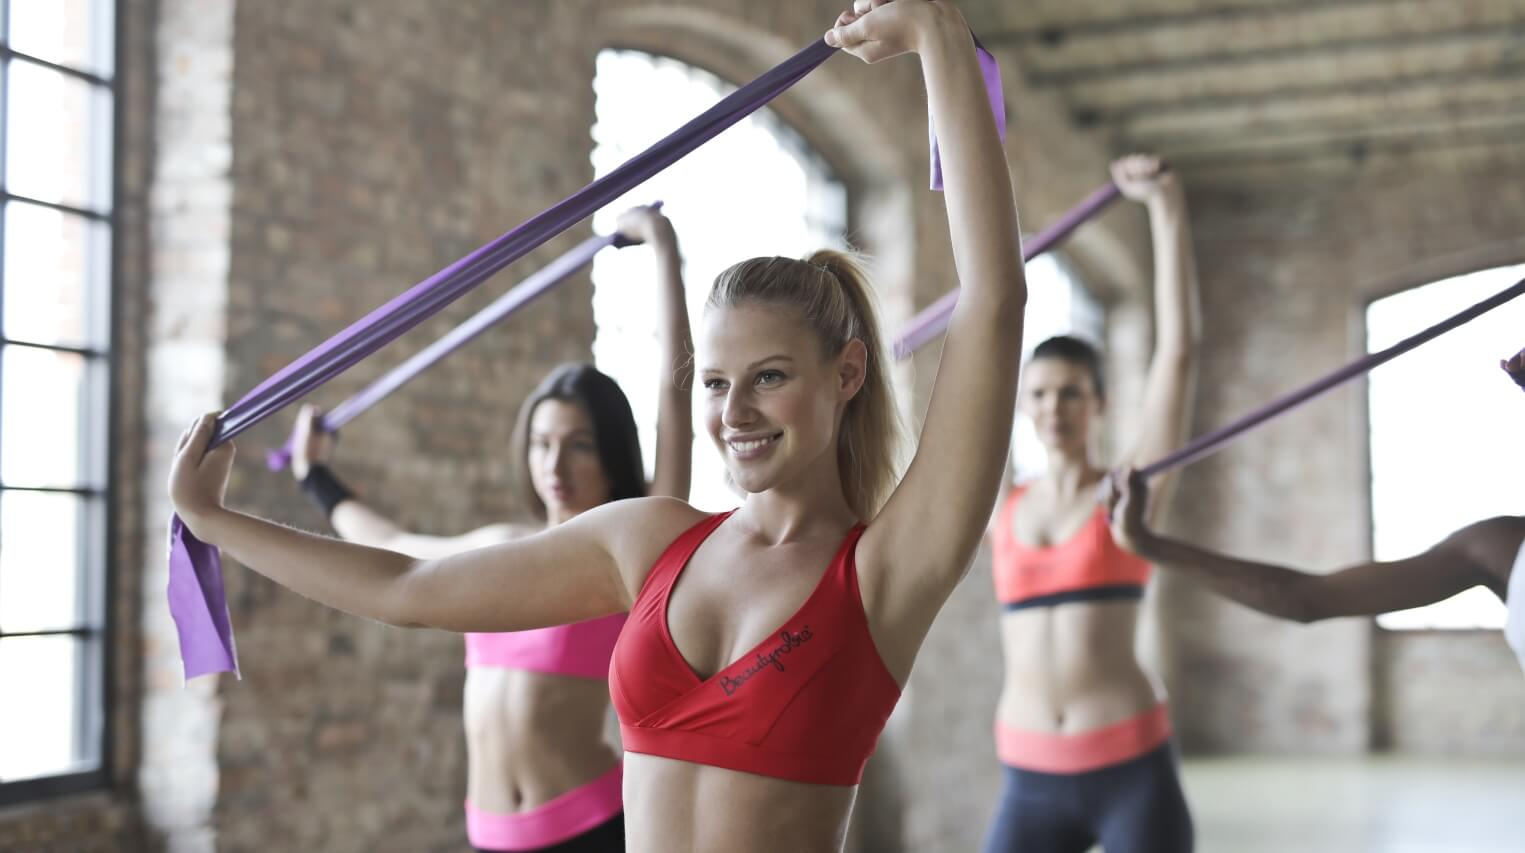 women working out to lose weight and tone up the body